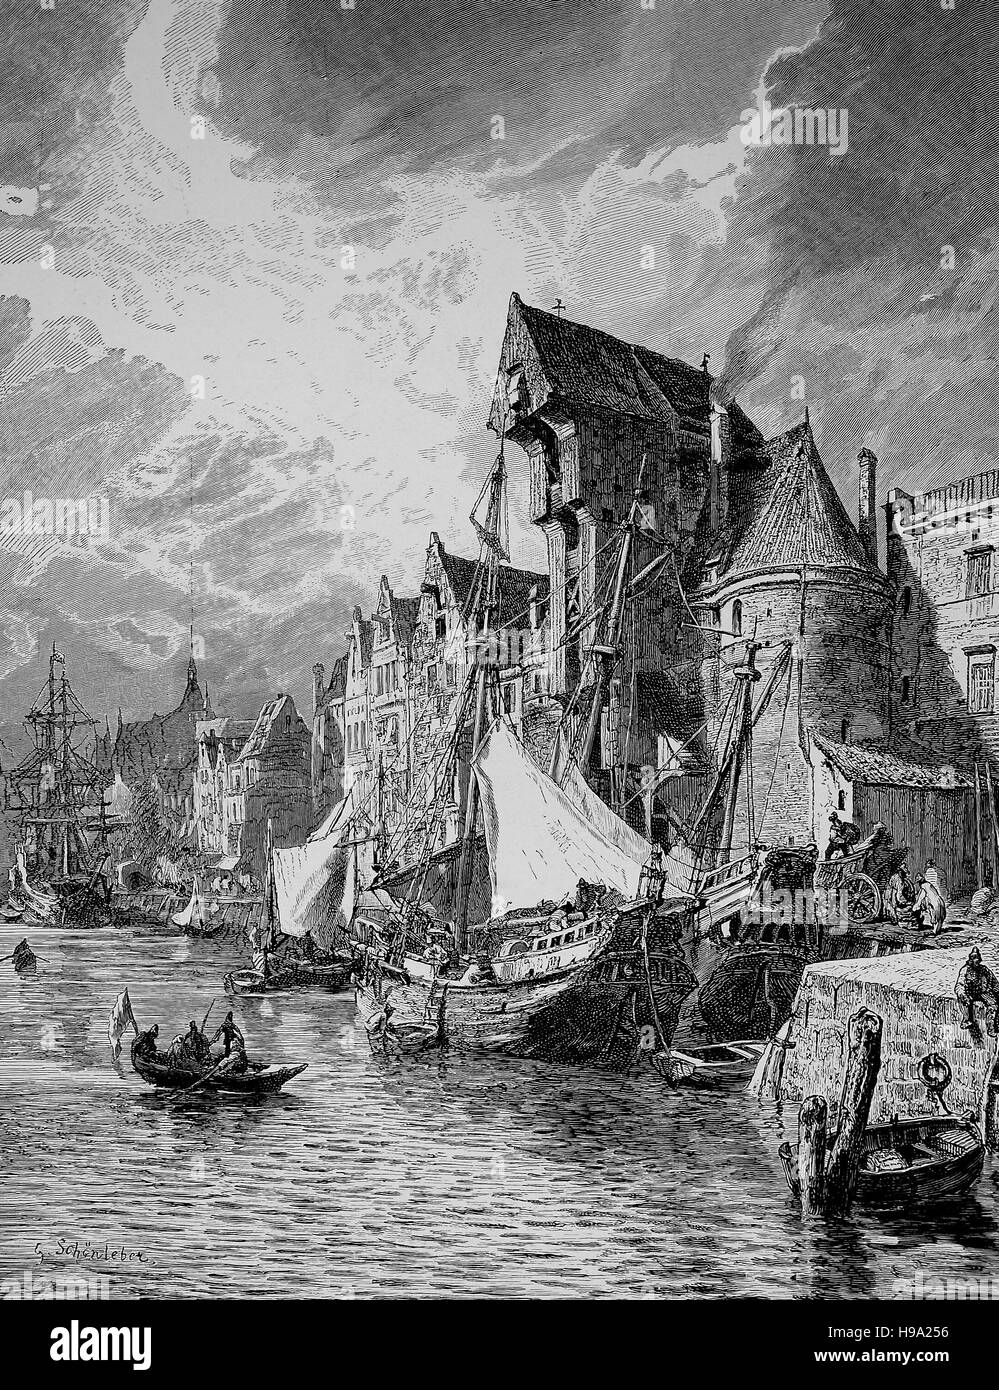 Harbour of Gdansk, Danzig, Poland in the Middle Ages, historical illustration - Stock Image